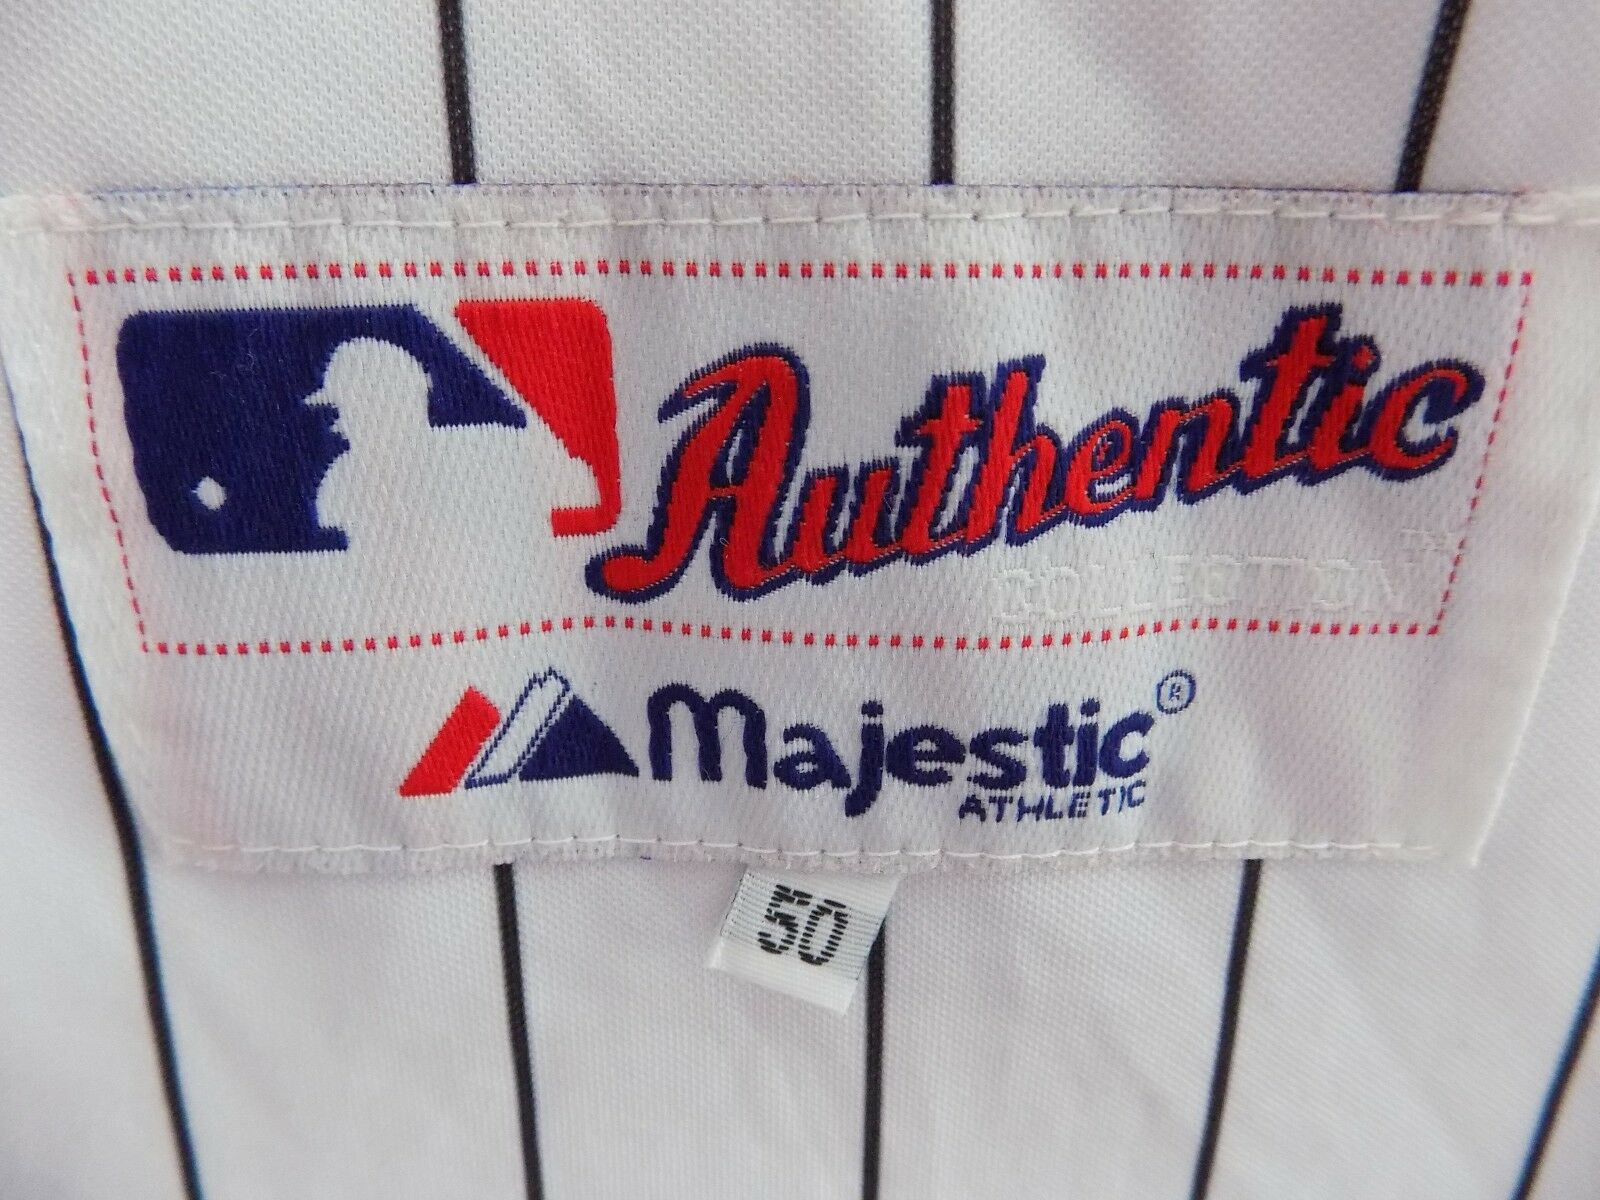 MAJESTIC ATHLETIC VERY RARE CHICAGO Weiß Weiß CHICAGO SOX IGUCHI Shirt 2005/07 Jersey  15 073da0